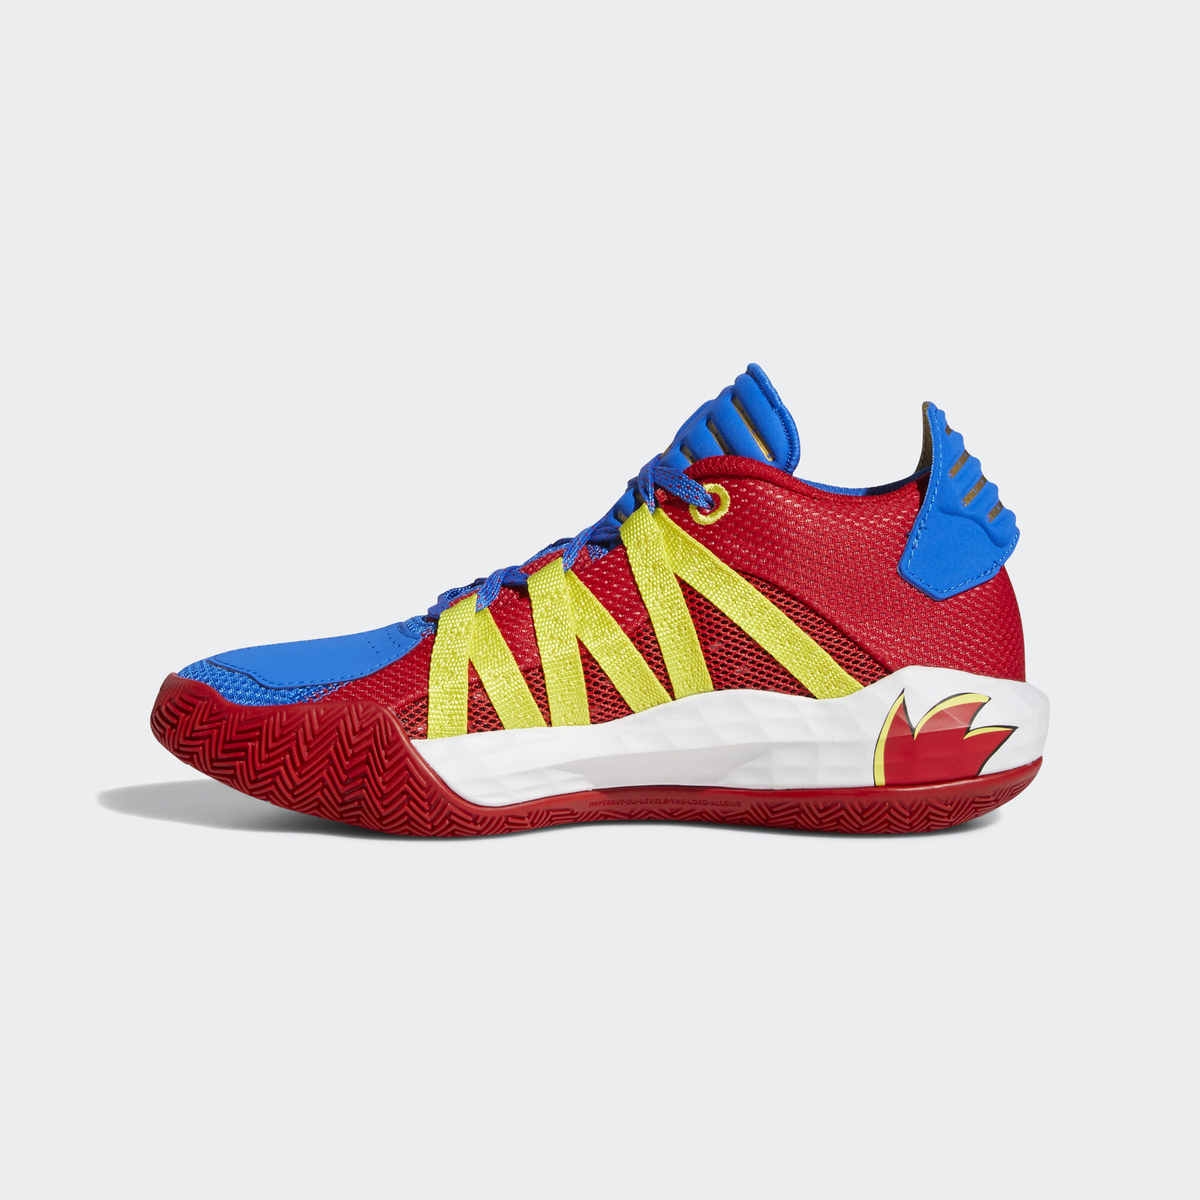 Sonic the Hedgehog x adidas Dame 6